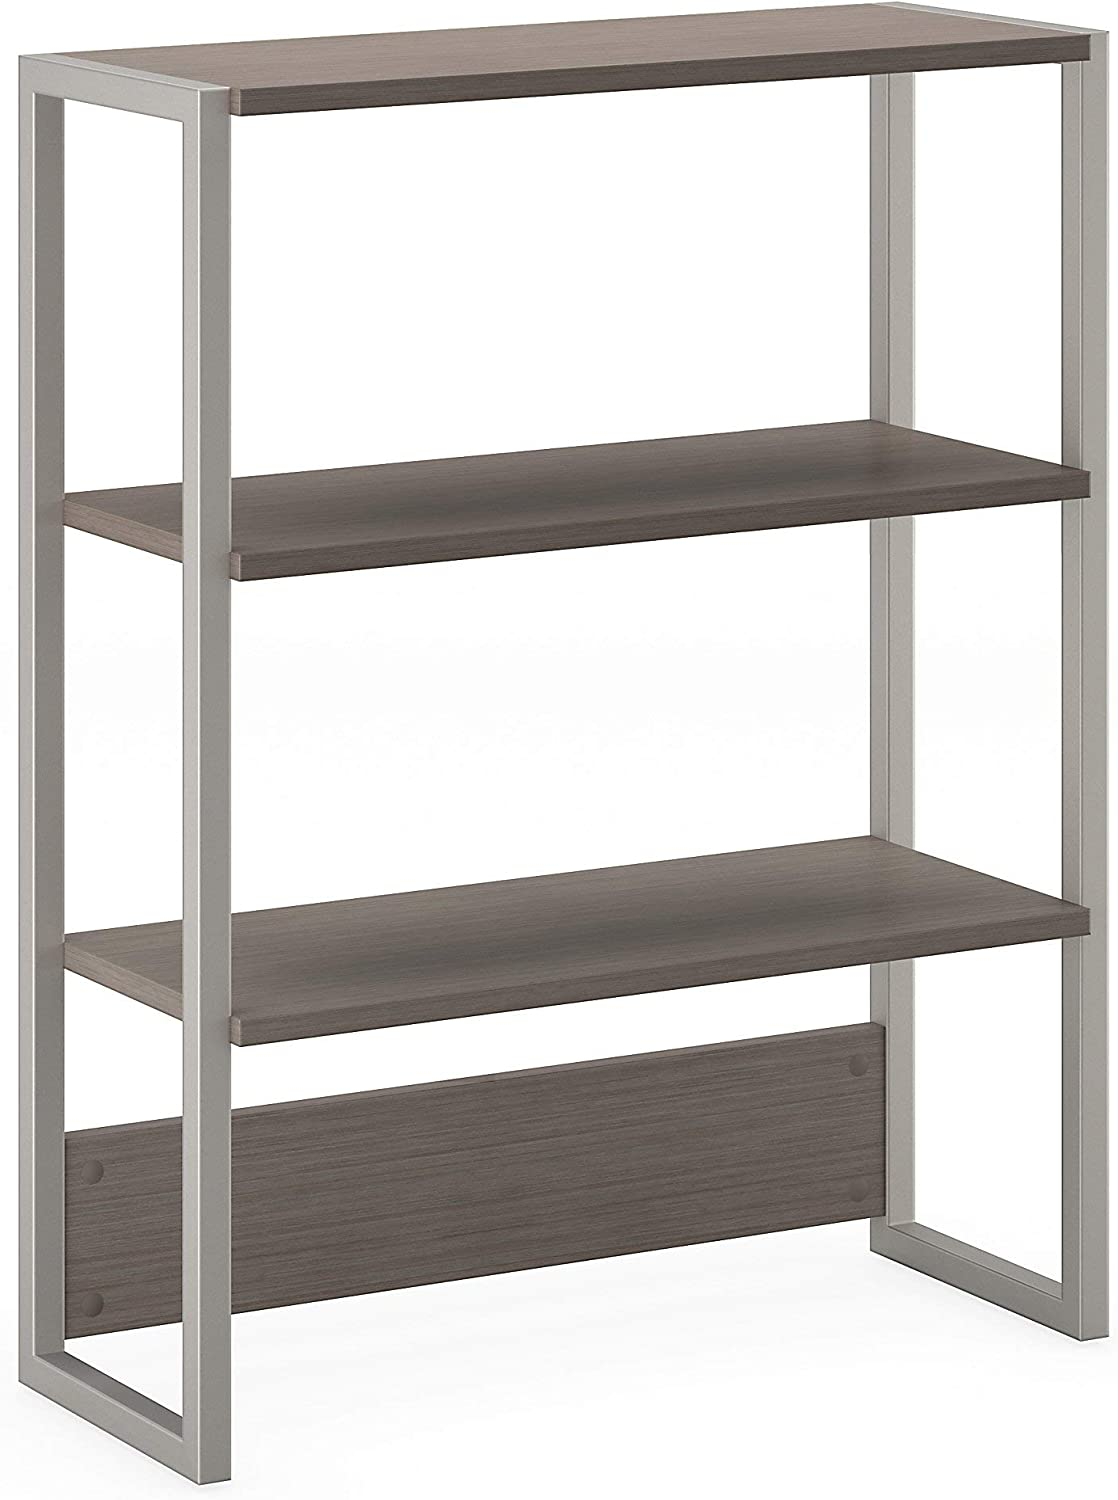 Bush Business Furniture Office by kathy ireland Method Bookcase Hutch, Cocoa